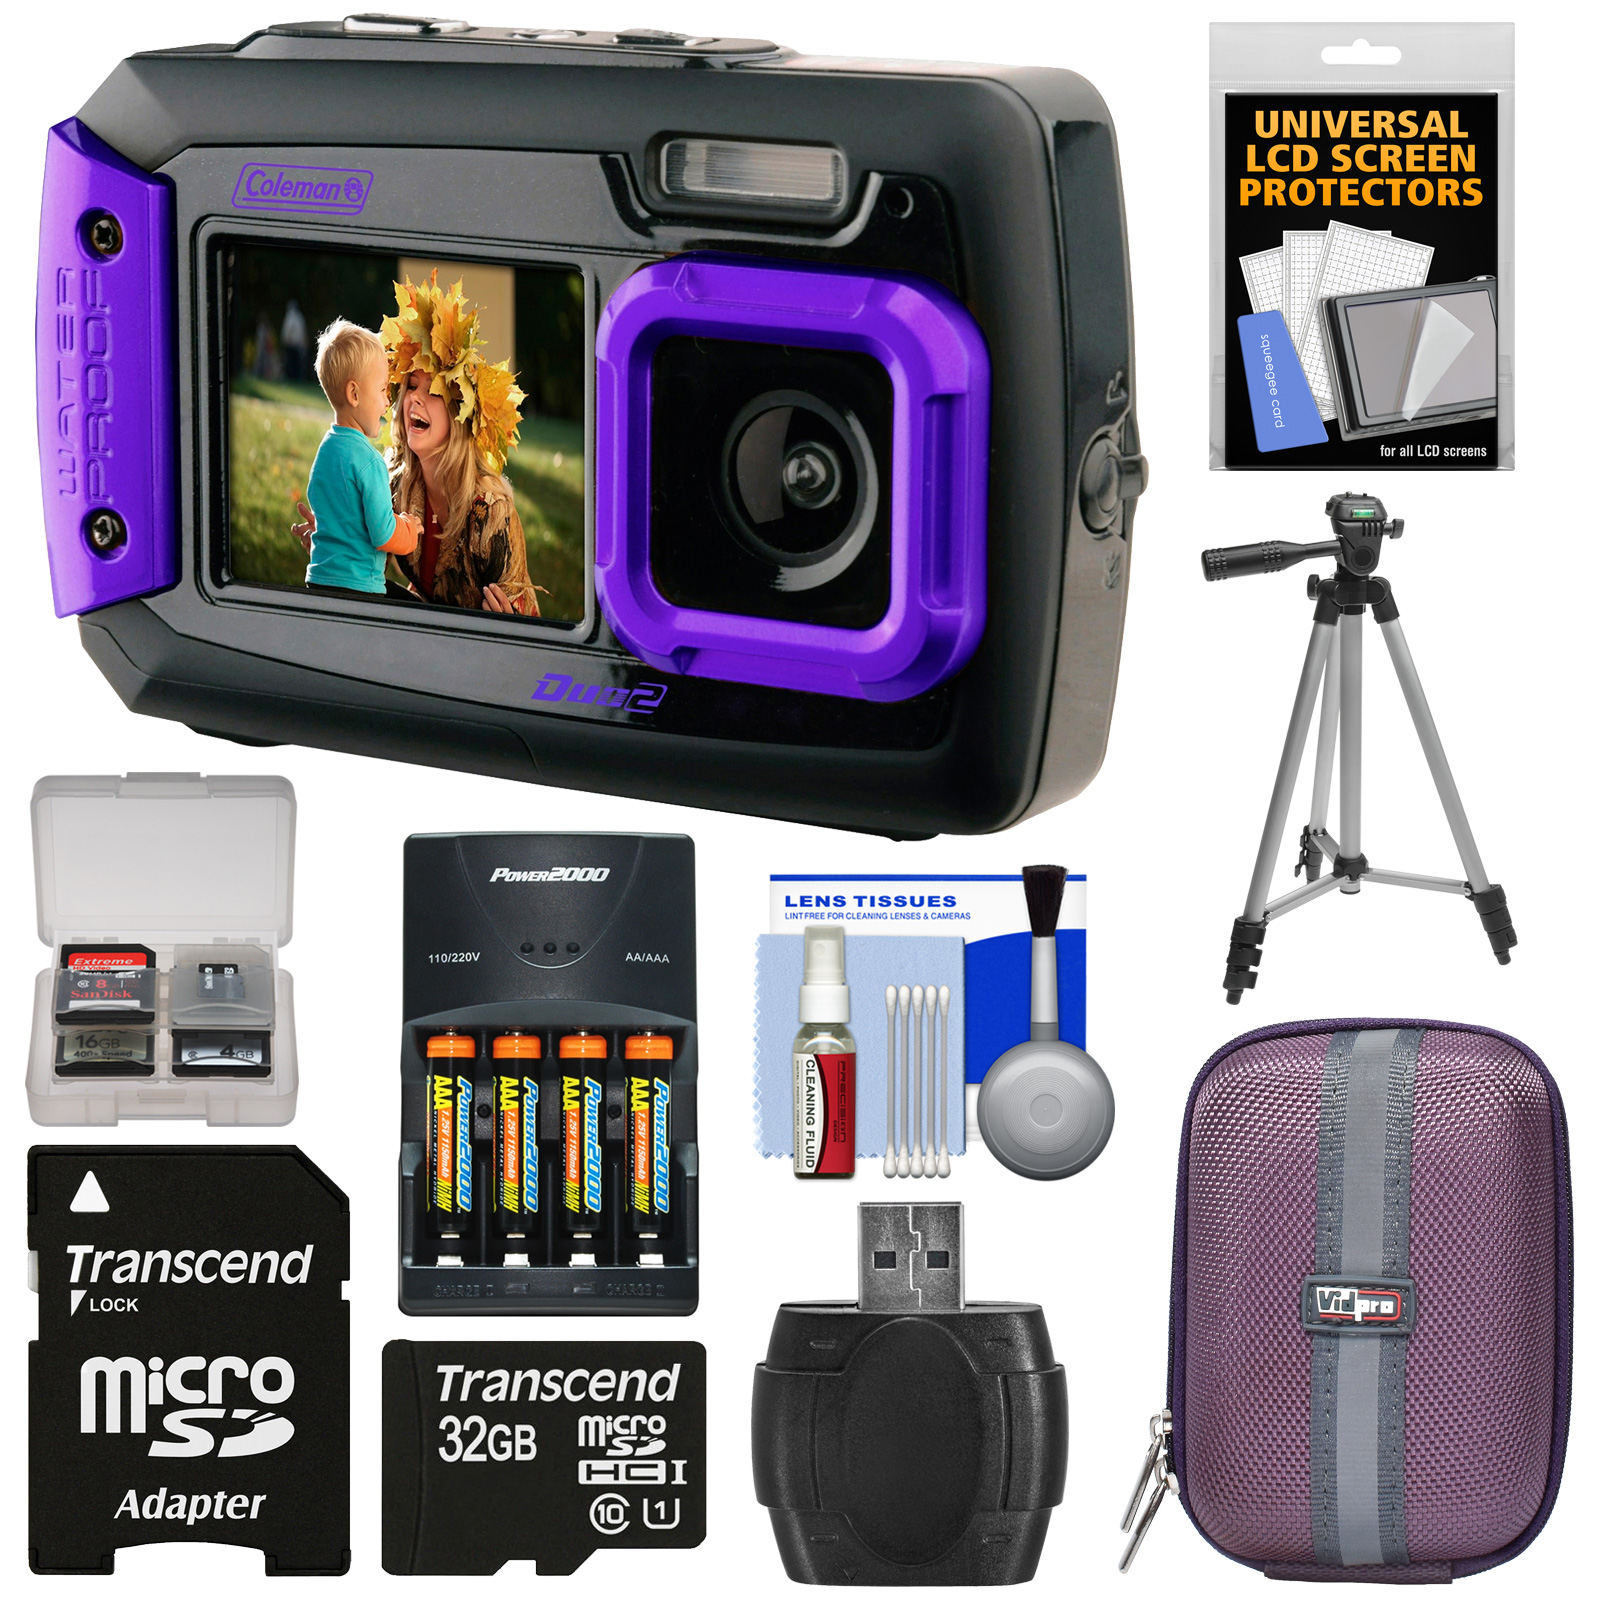 Coleman Duo 2V9WP Dual Screen Shock & Waterproof Digital Camera (Purple) with 32GB Card + Batteries & Charger + Case +... by Coleman